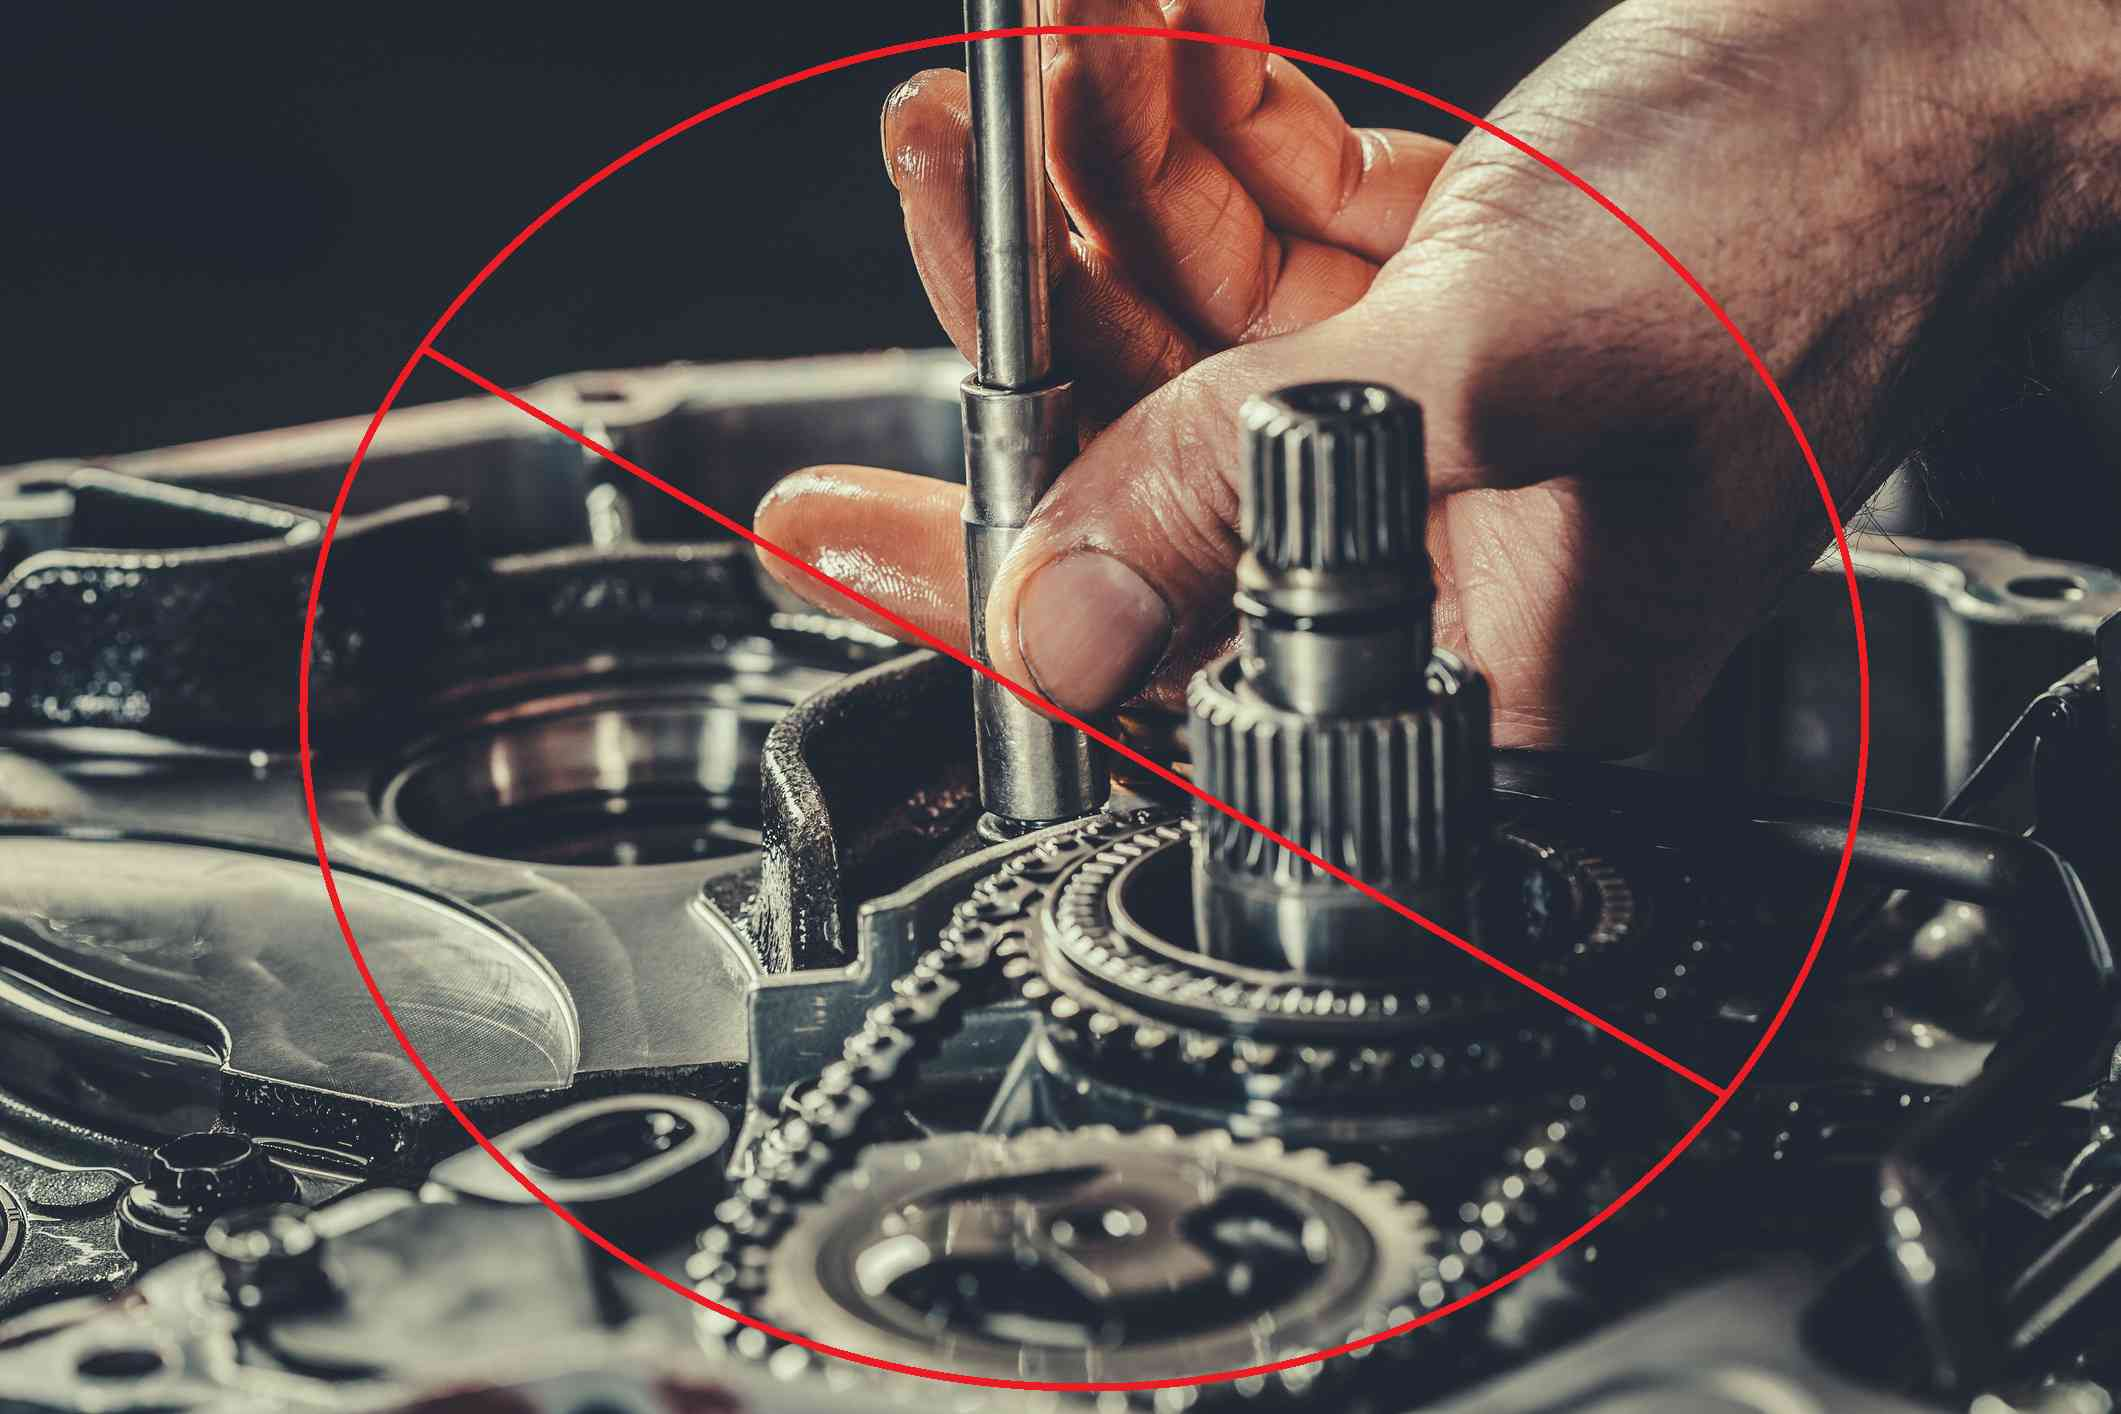 A closeup of a transmission repair with the No symbol superimposed over the top.